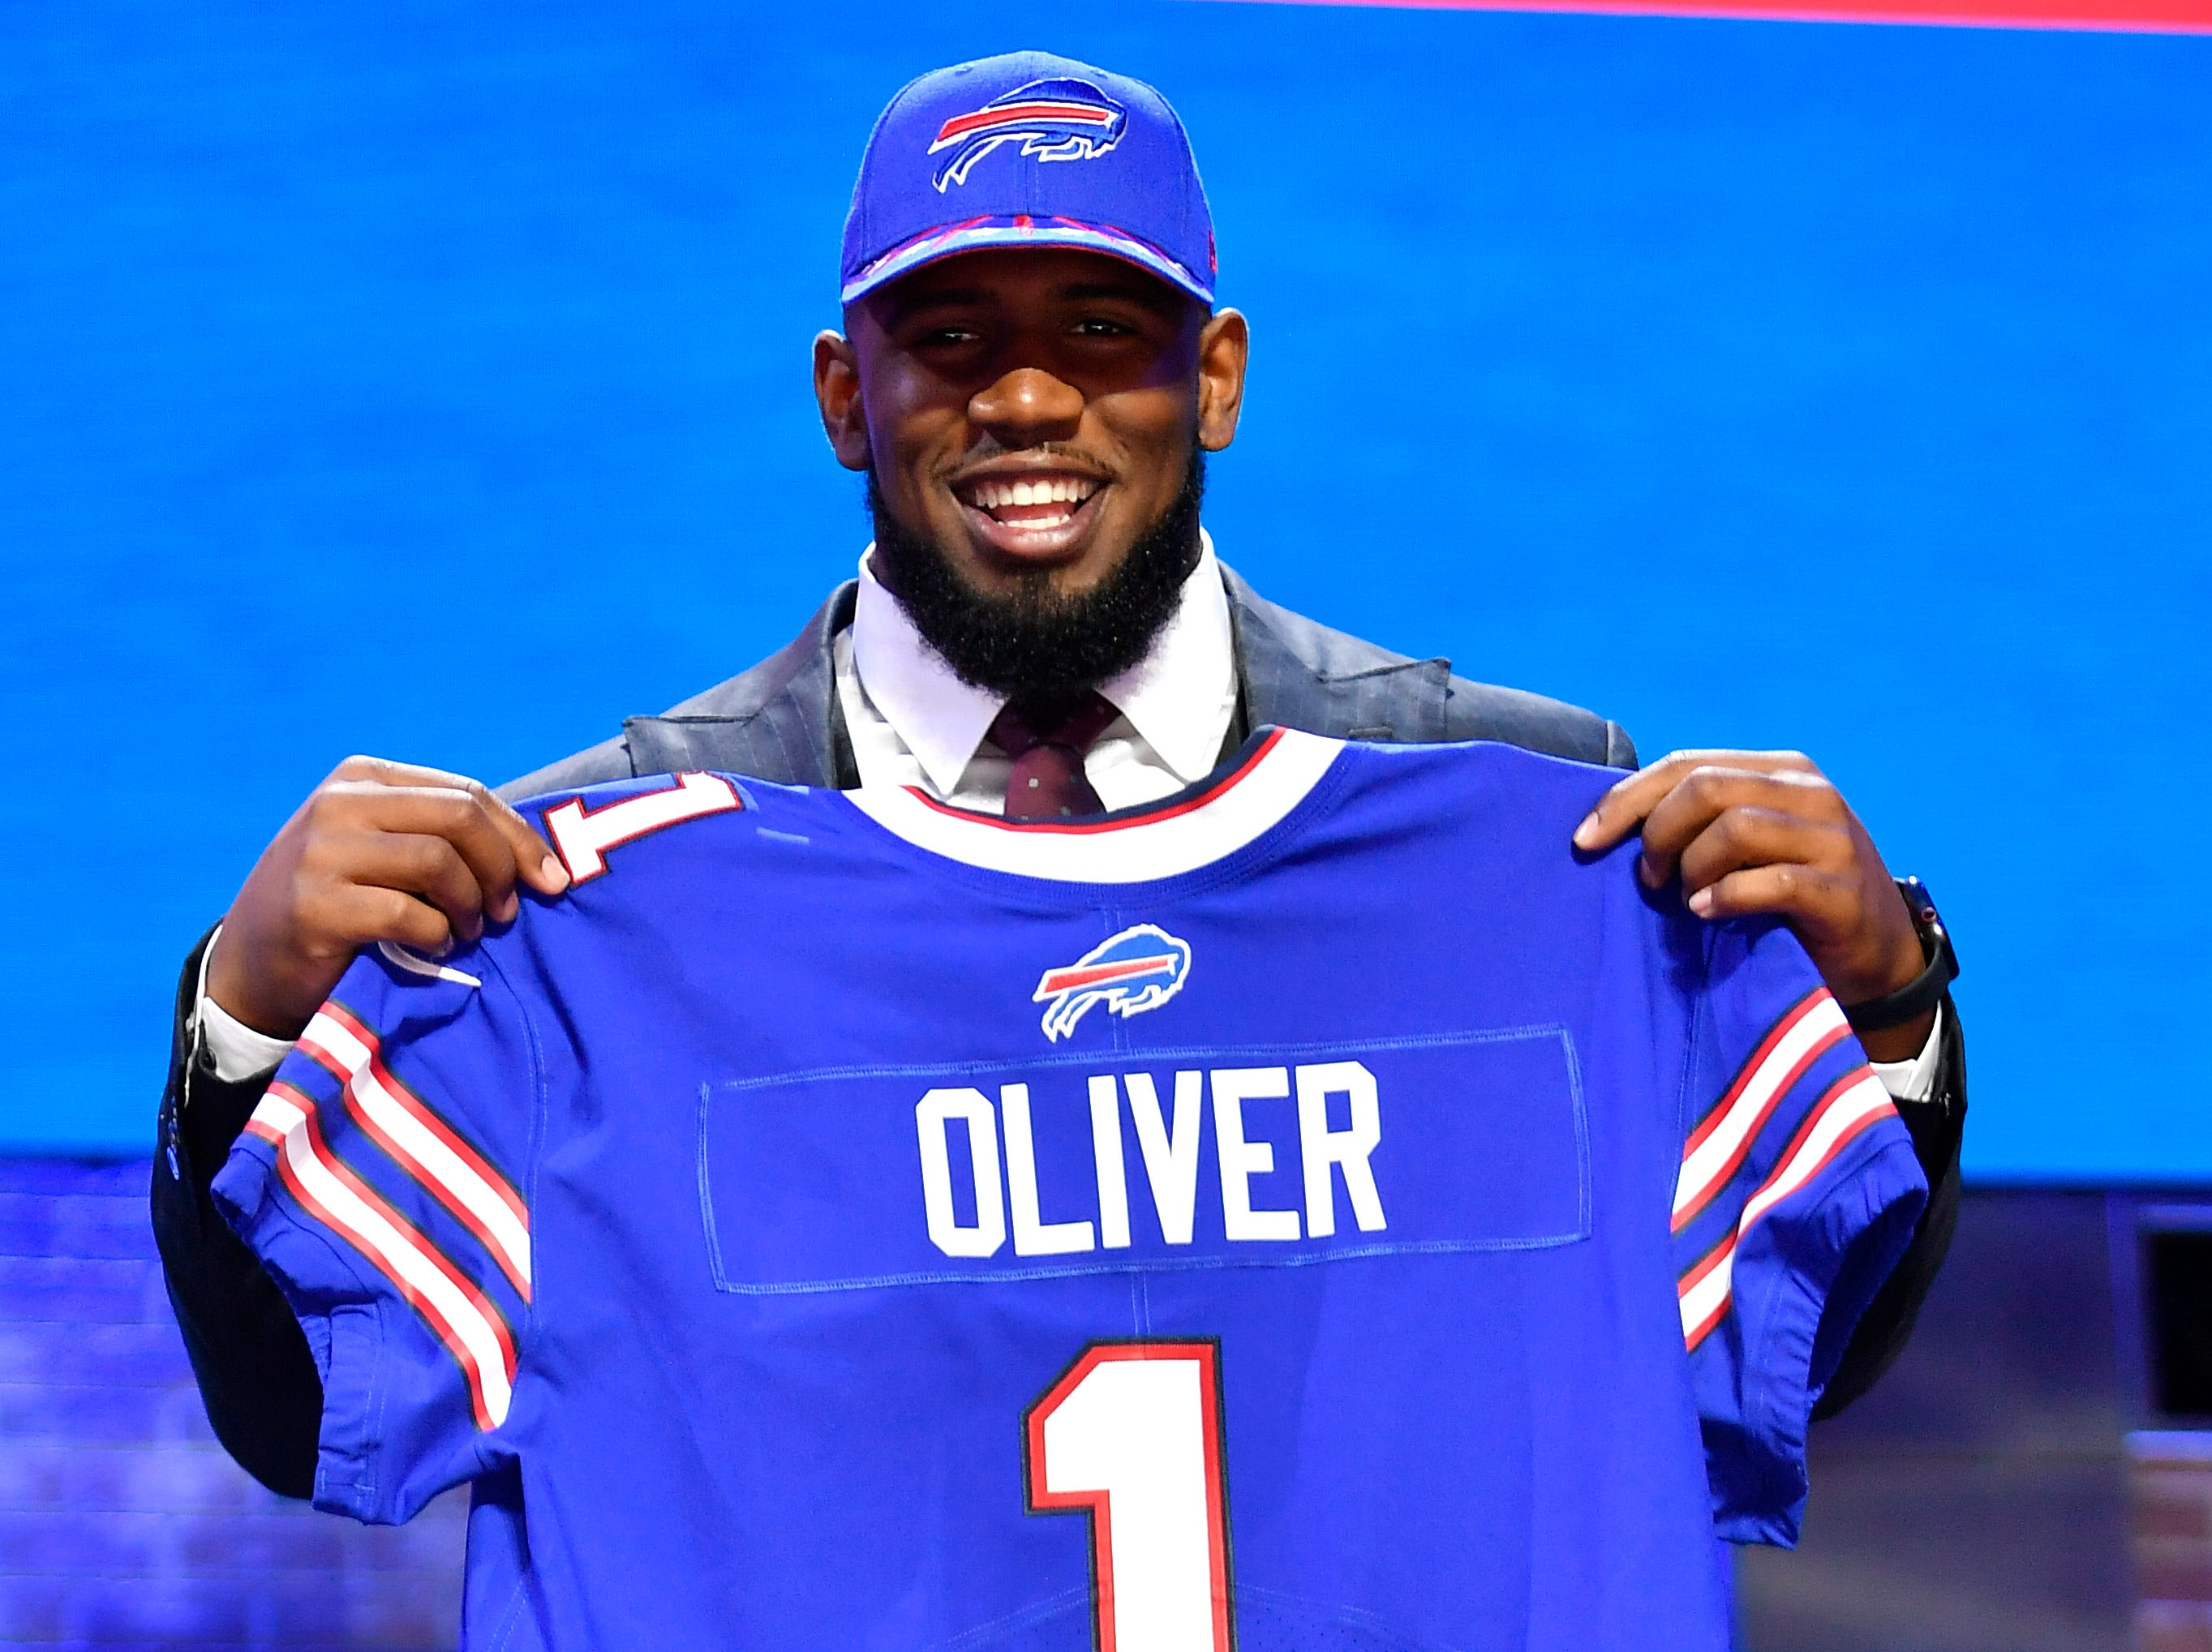 Ed Oliver holds his new Buffalo Bills jersey after being picked during the first round of the NFL Draft Thursday, April 25, 2019, in Nashville, Tenn.